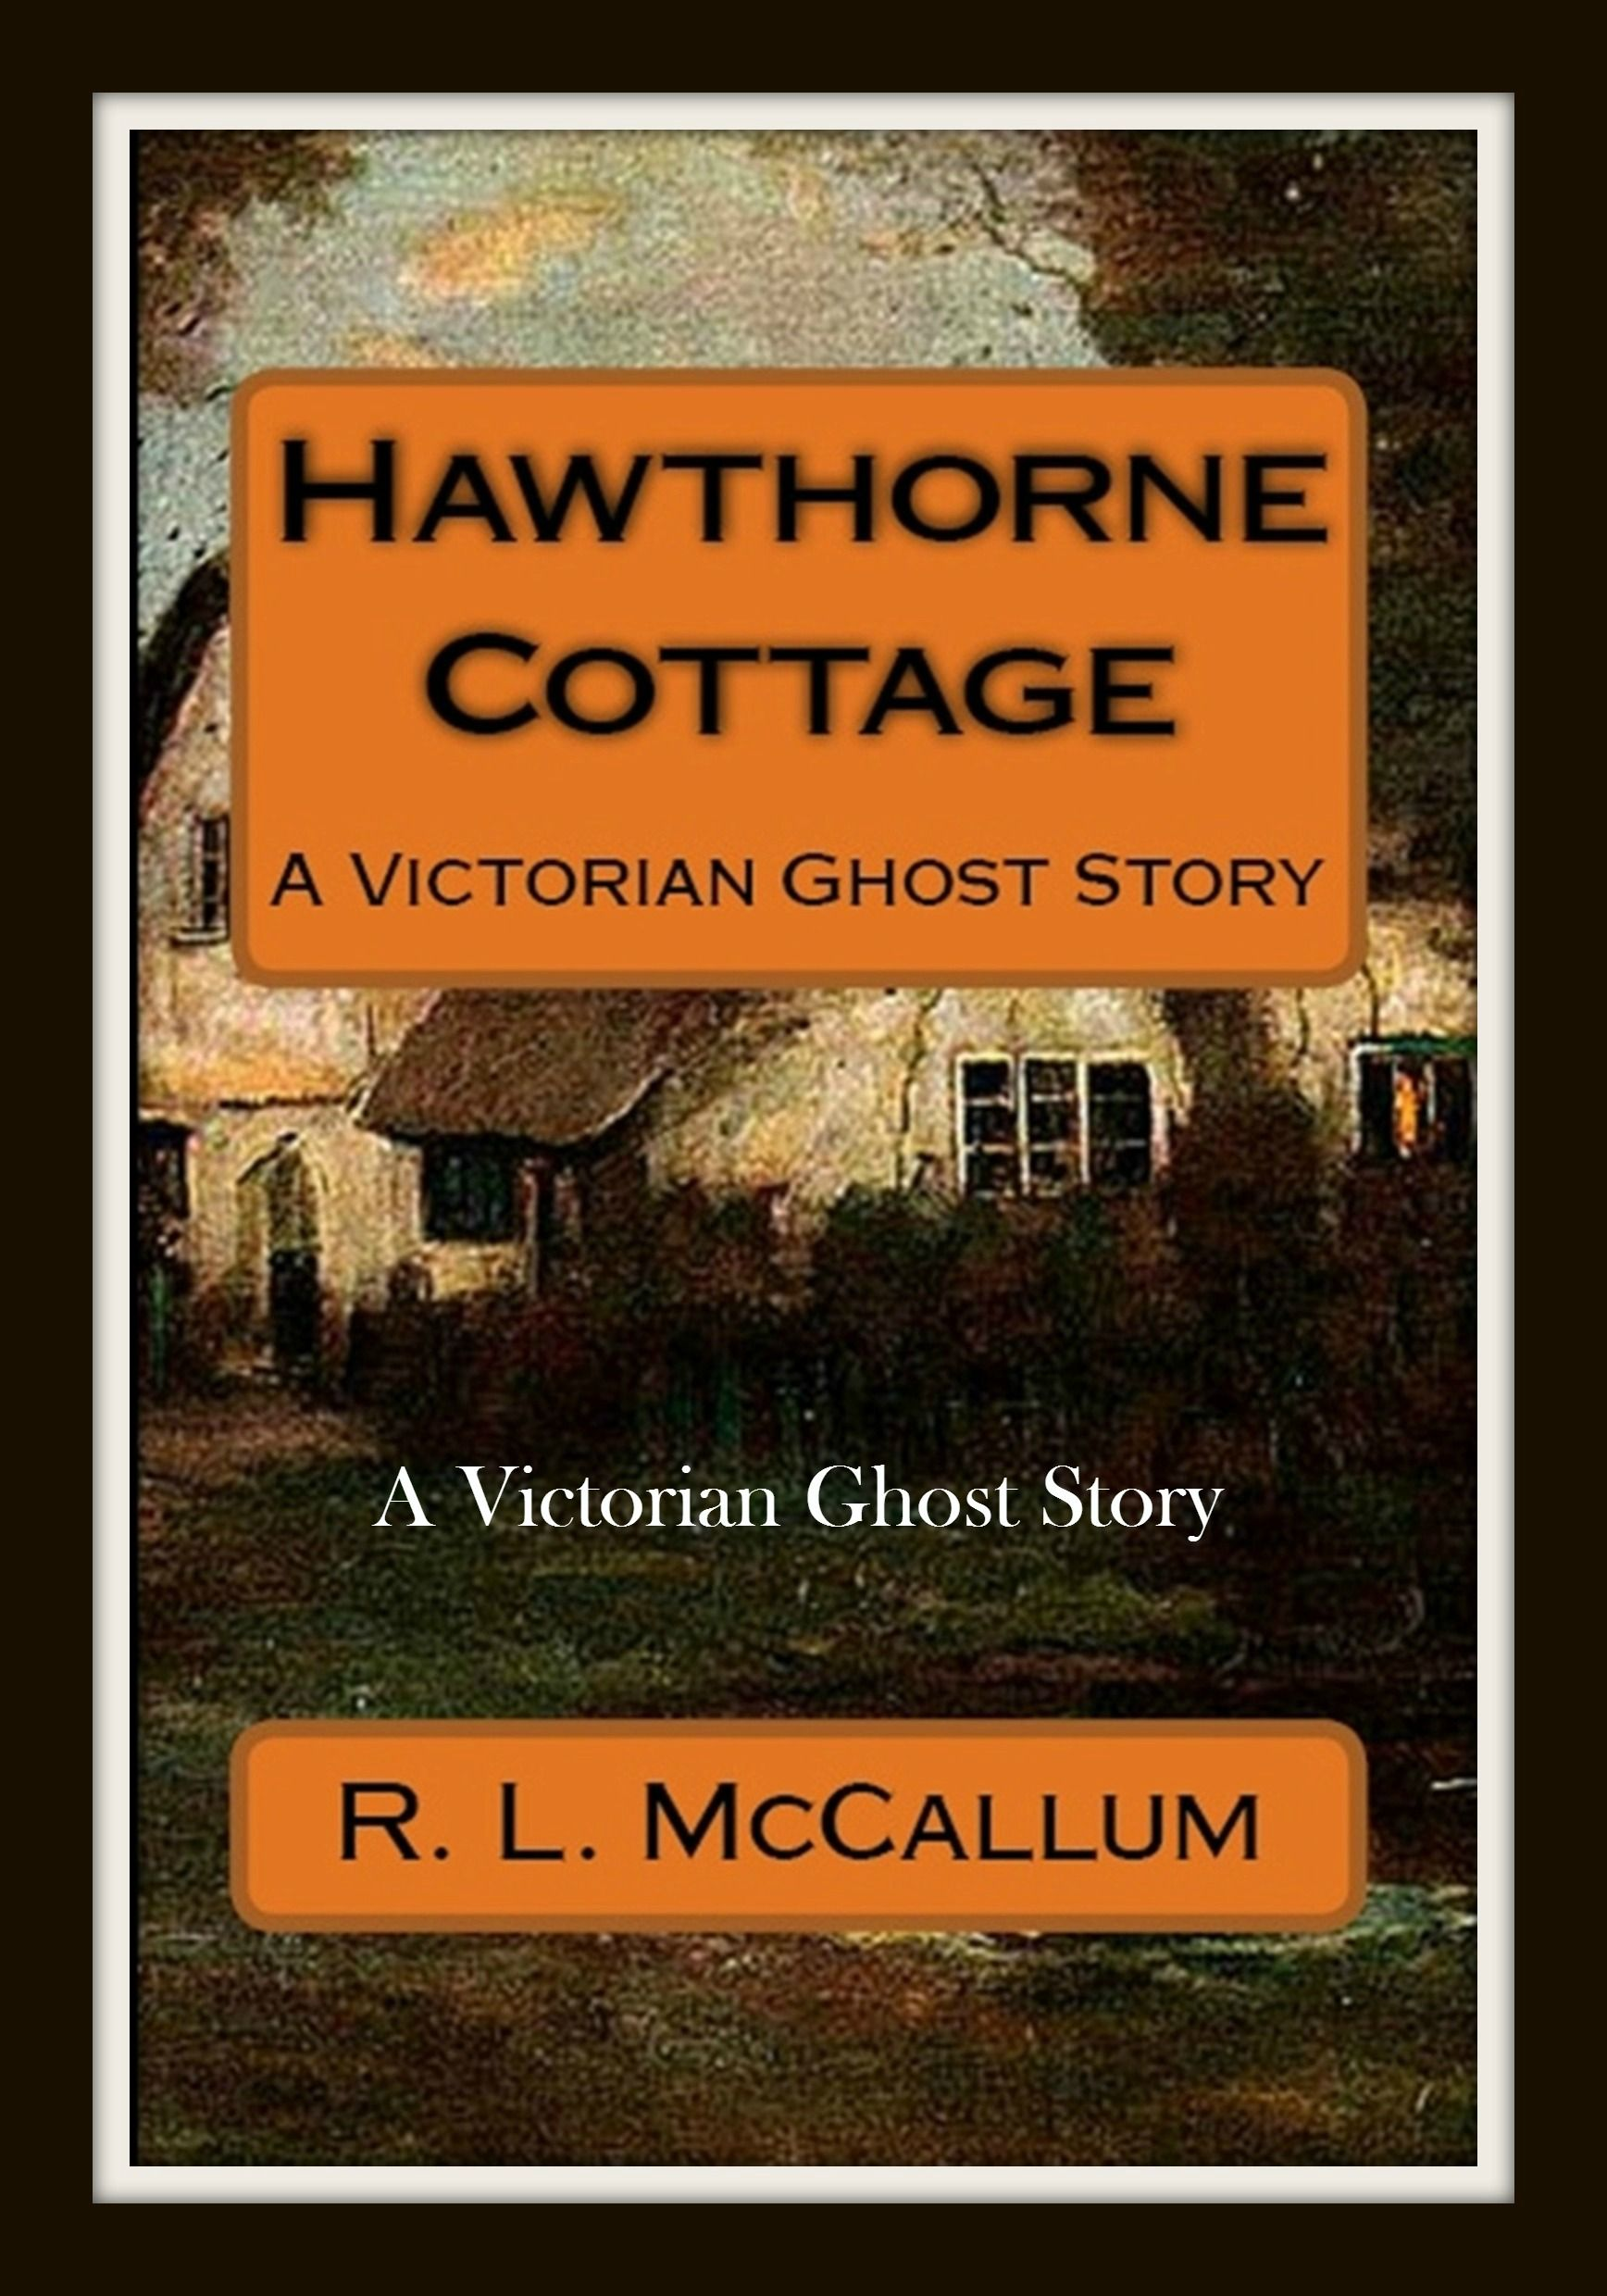 A victorian ghost story gothic books books book lovers